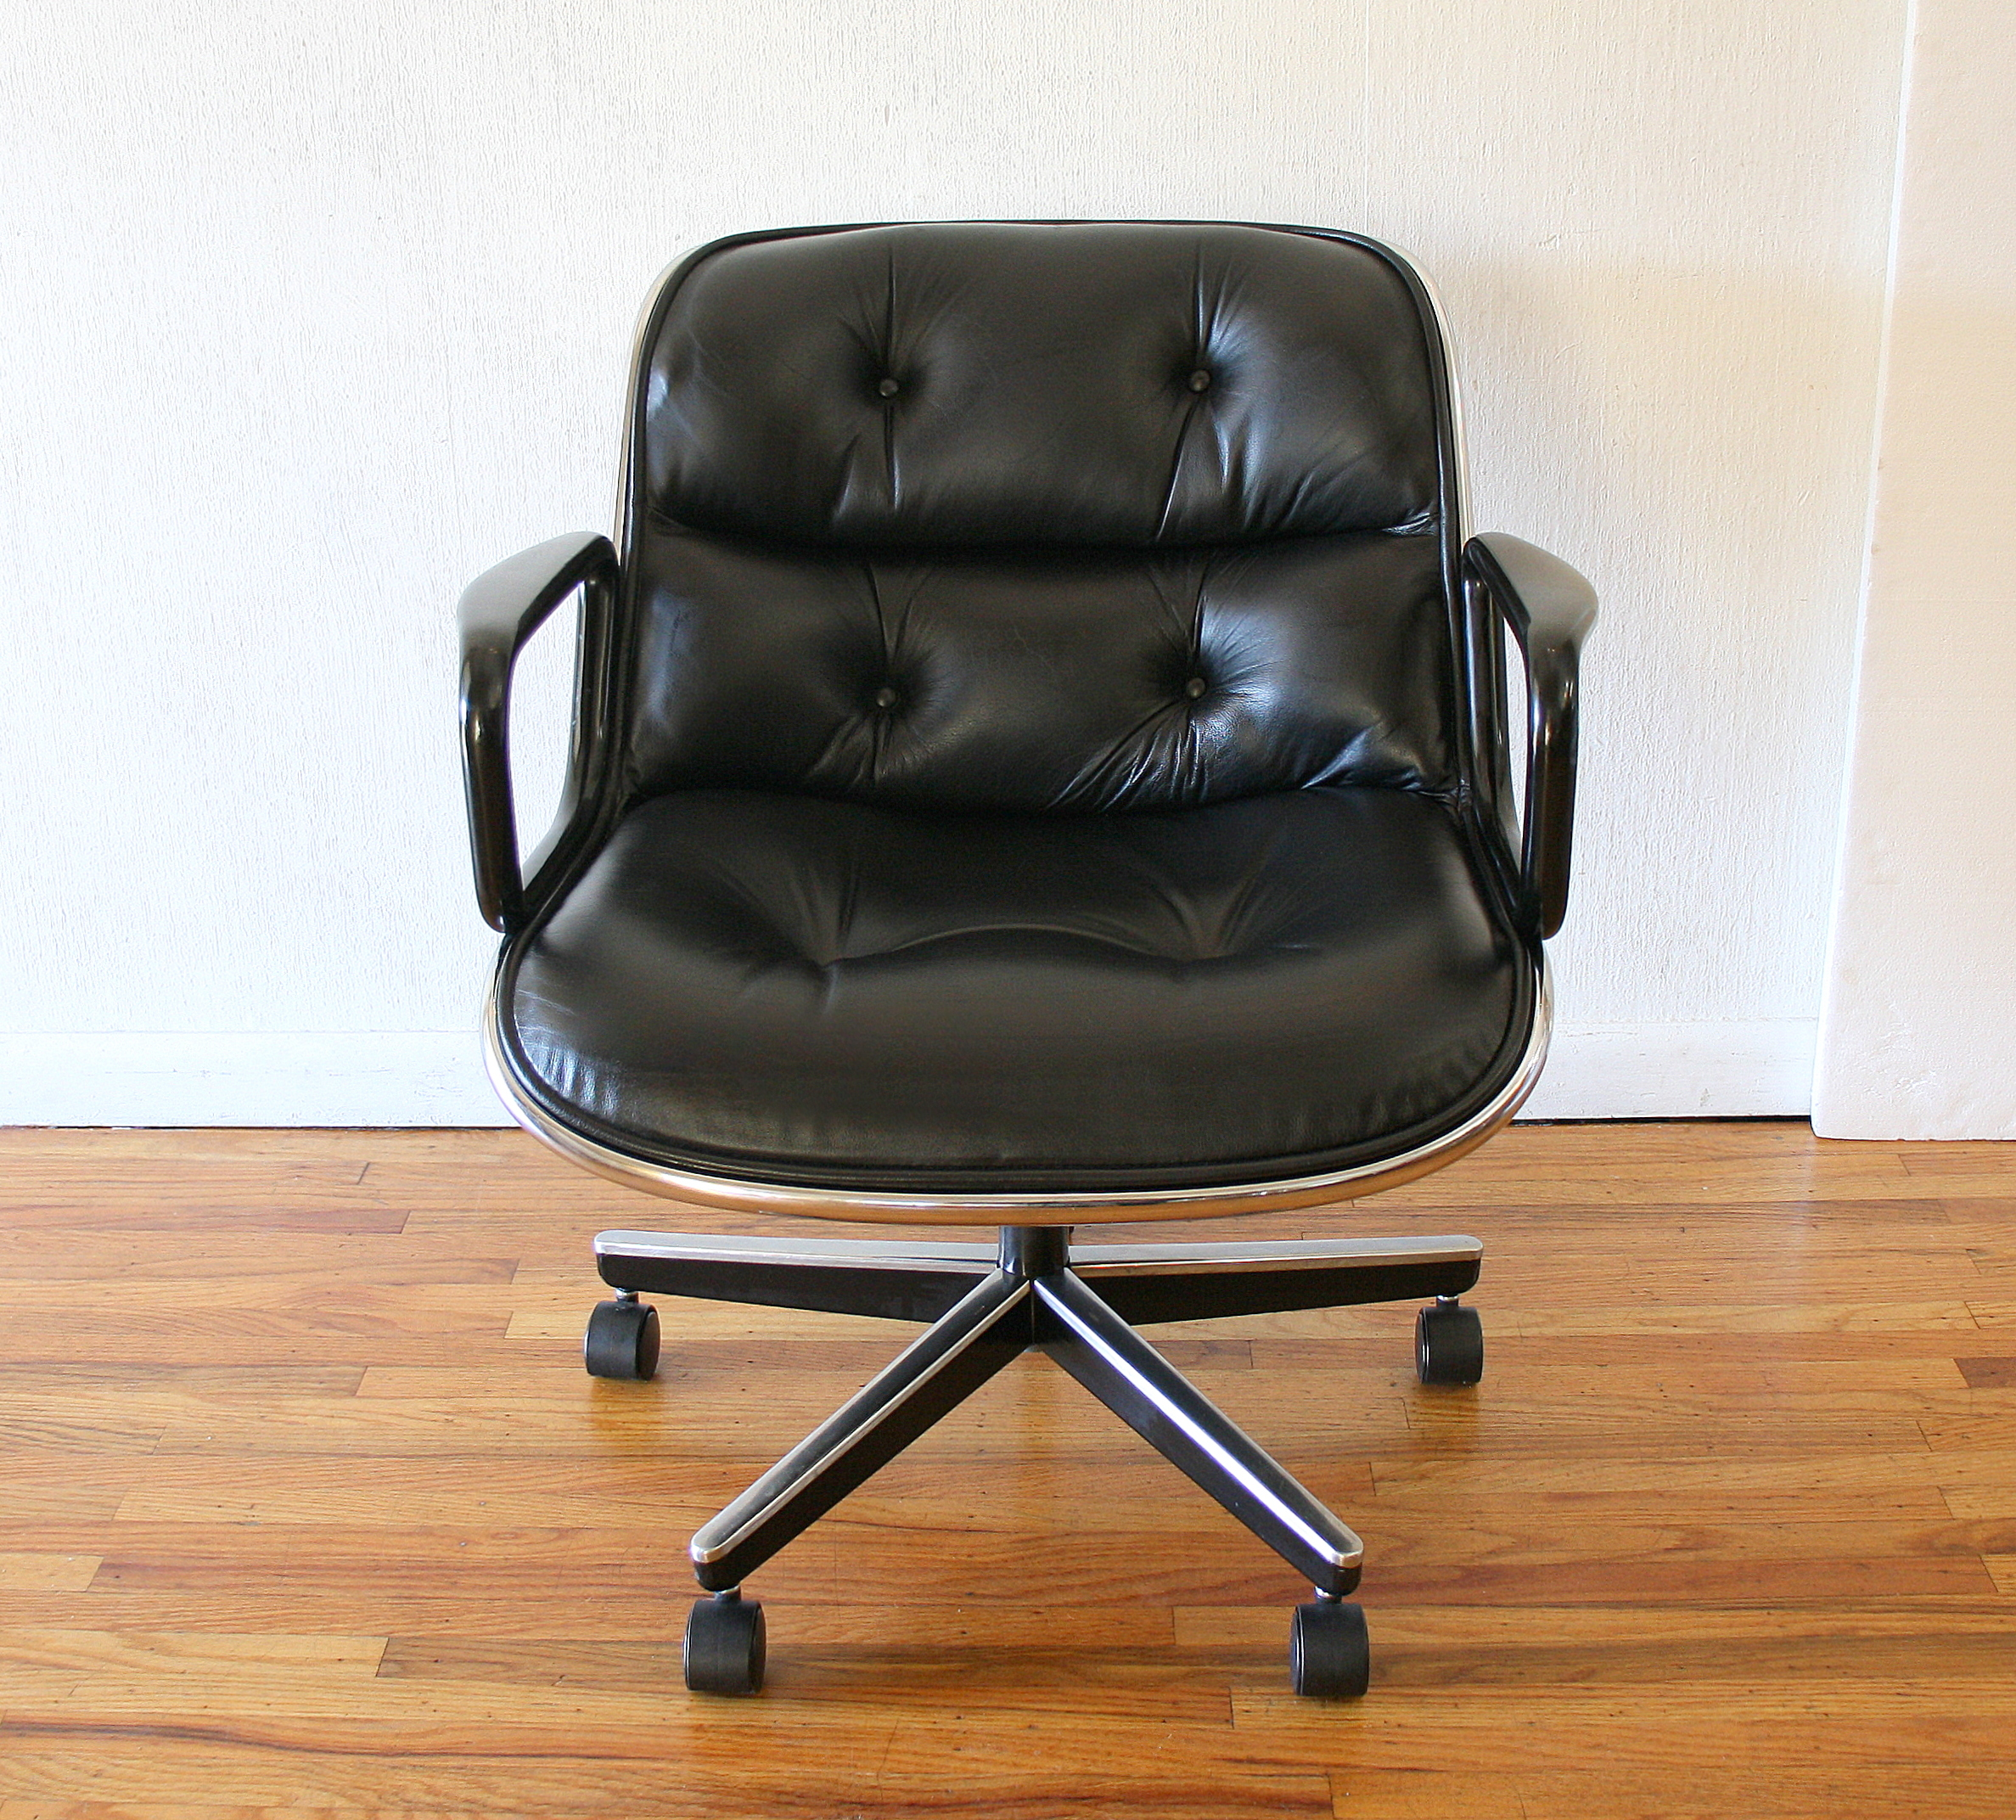 Knoll desk chair 1